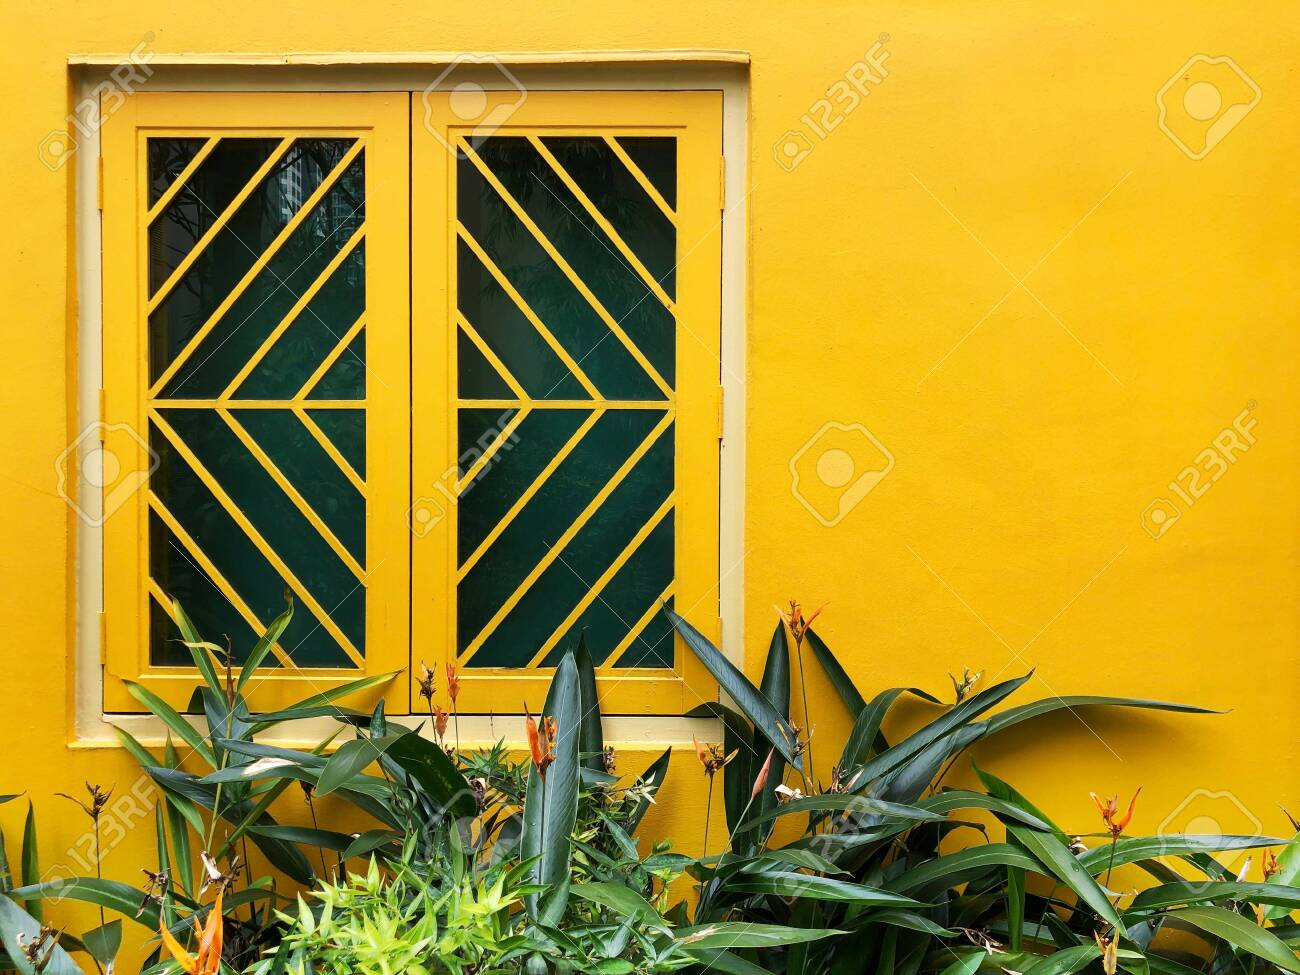 Bright Yellow Wall And Window With Grill And Green Plants Wallpaper Stock Photo Picture And Royalty Free Image Image 125474122